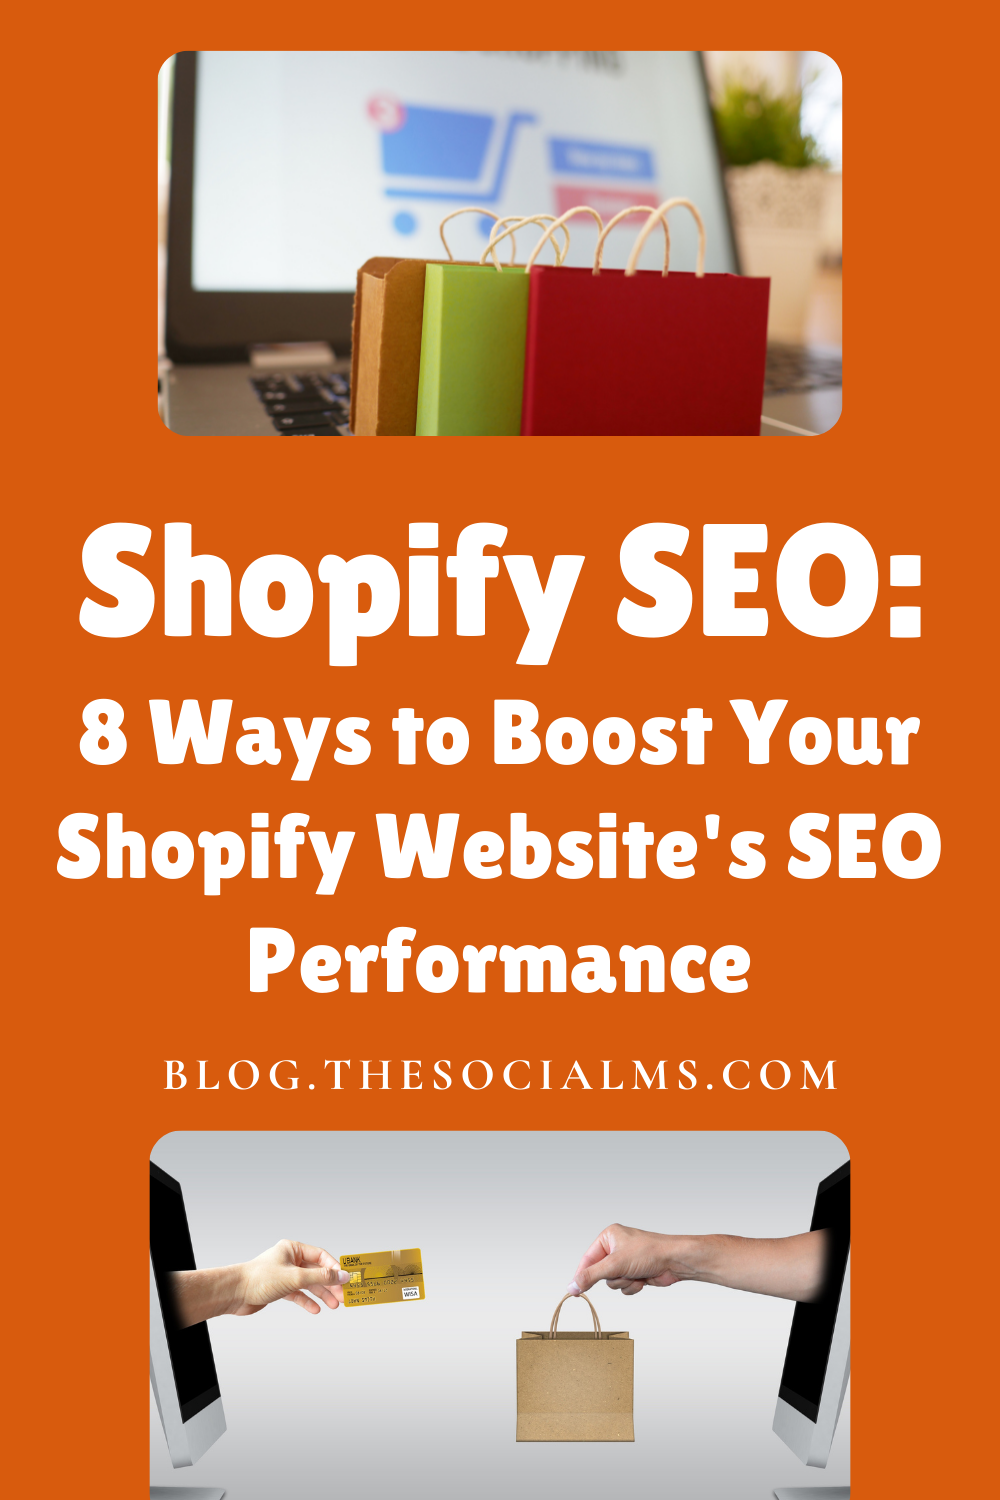 You need to optimize your Shopify storefront for better performance through SEO. Here are some simple + proven ways to boost your Shopify SEO. Boost your ecommerce SEO performance with these tips. #ecommerce #shopify #onlineshop #seo #ecommerceseo